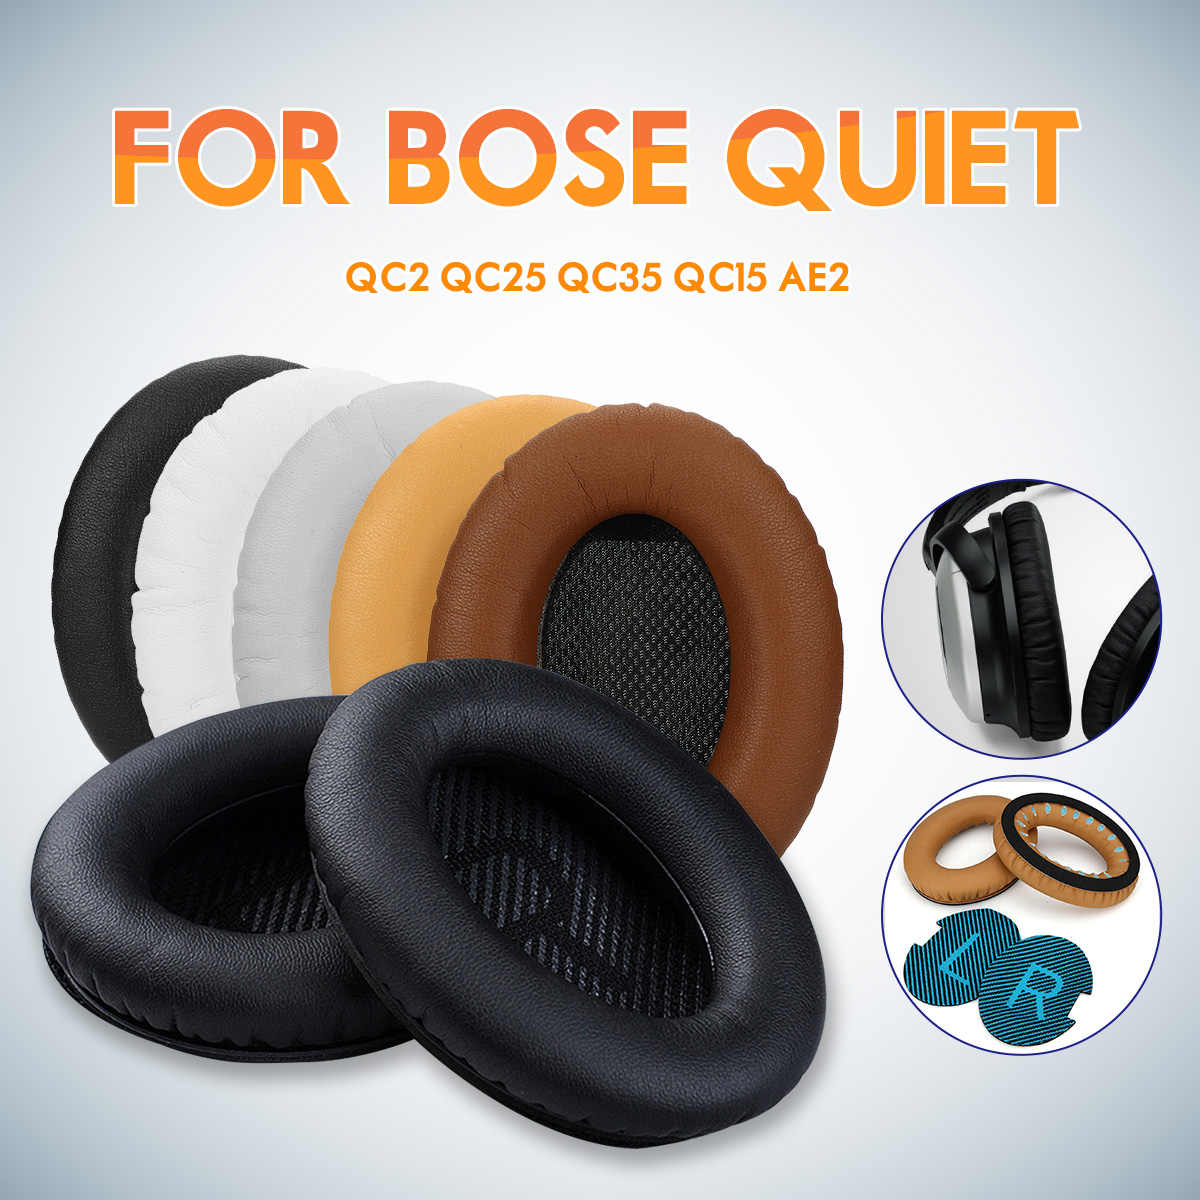 1 Pair Black White Grey Coffee Khaki Replacement Soft Foam Sponge Headphone Ear Pad Cushion For BOSE QC2 QC25 QC35 QC15 AE2